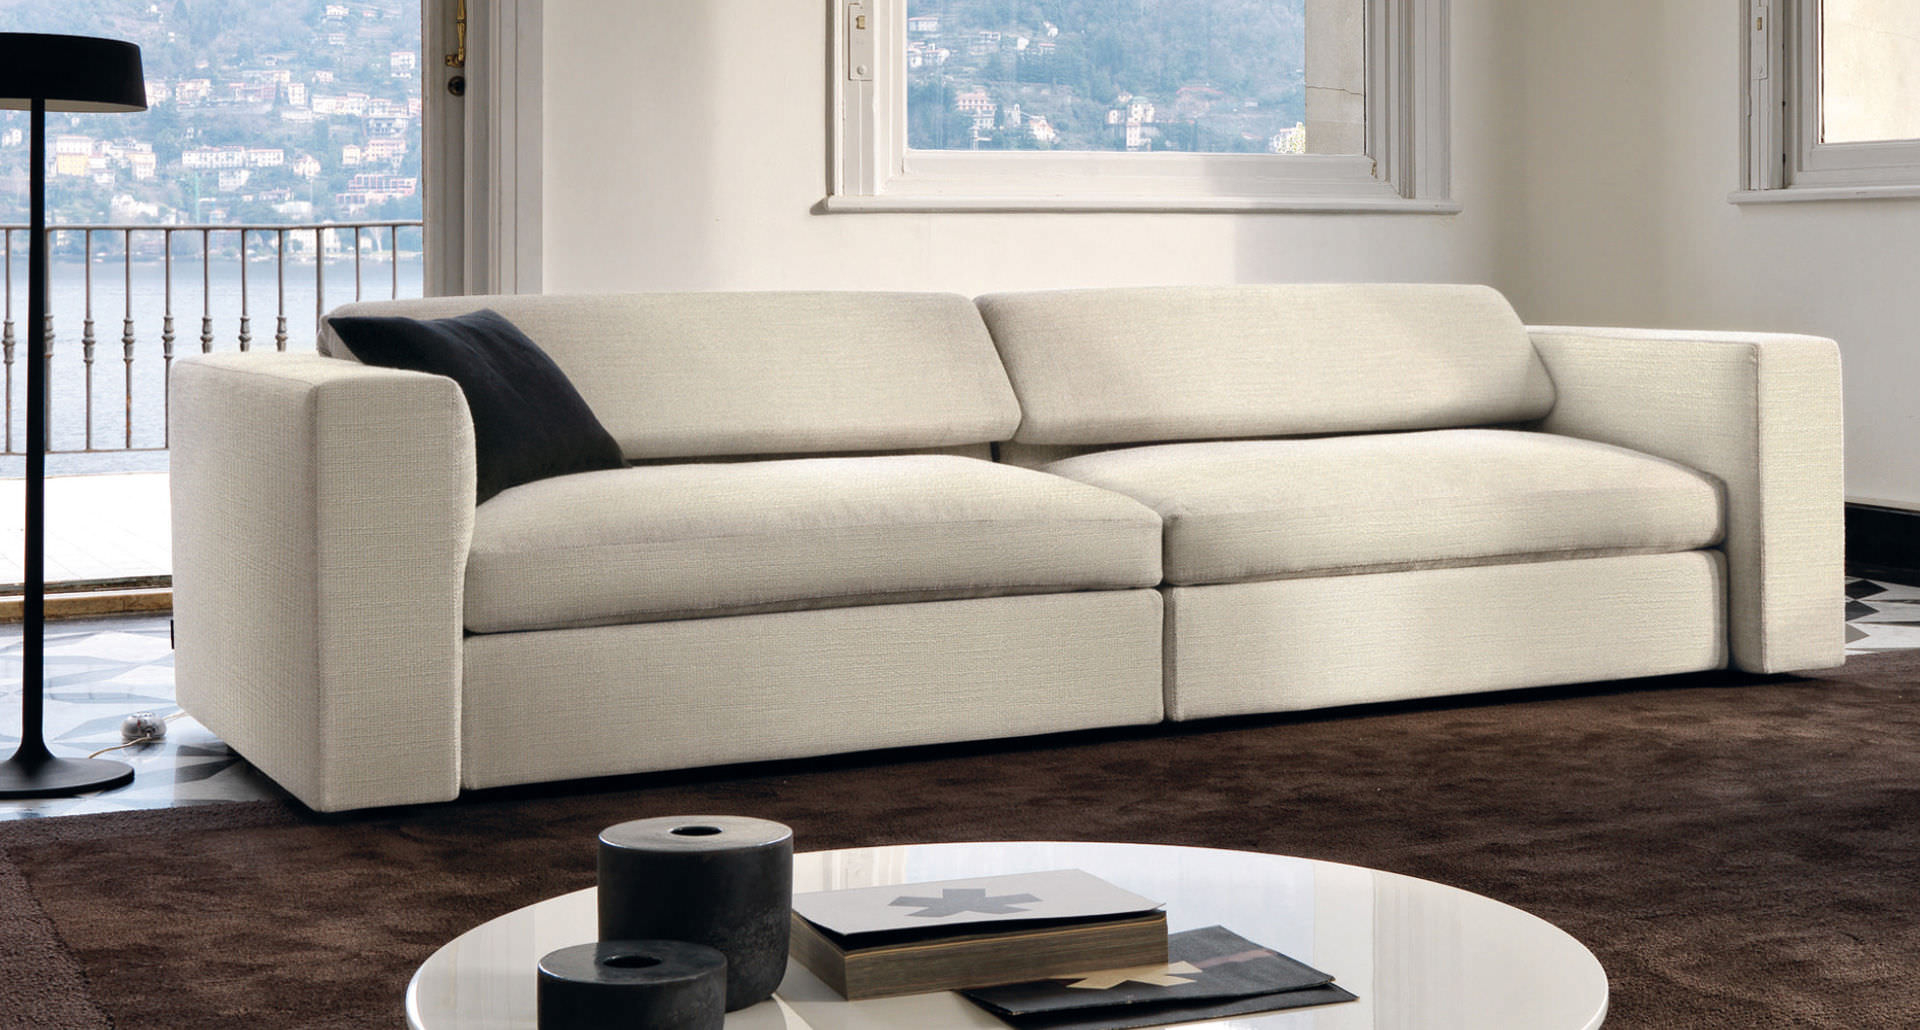 modern reclining sofas ideas on foterabove is a modern contemporary reclining sofa find out the